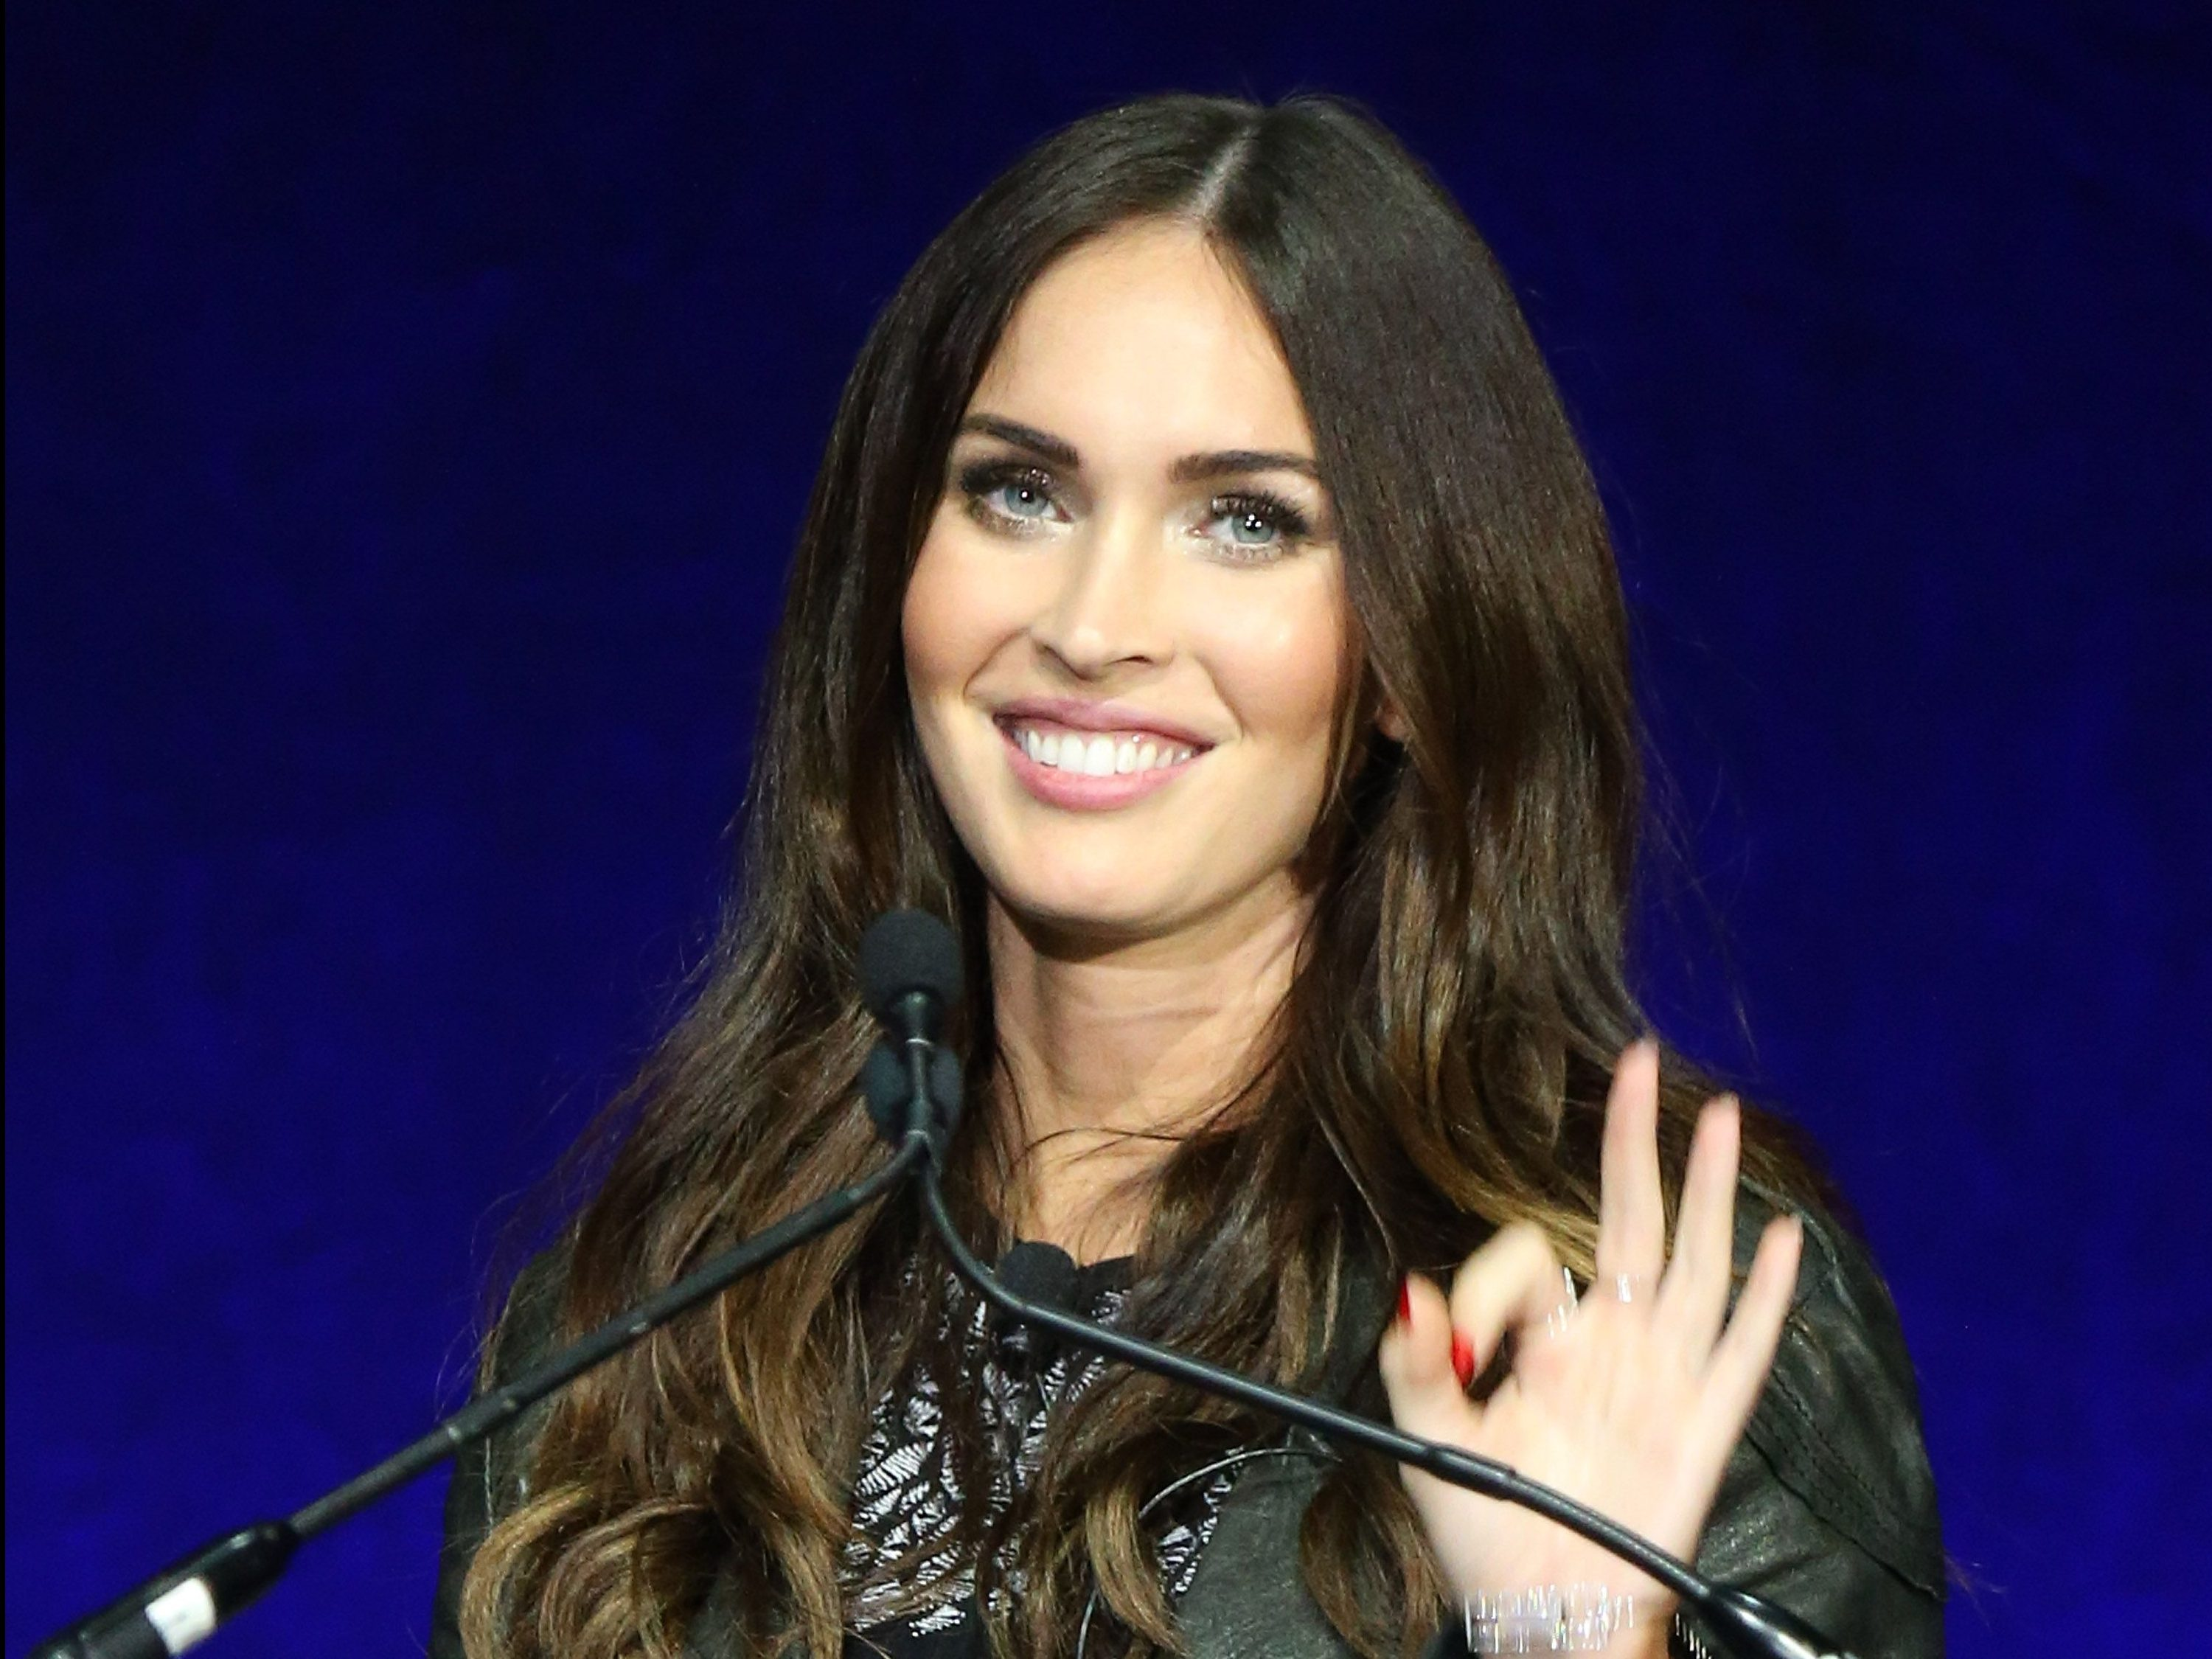 Megan Fox: 'I only sleep with people I love and never have one night stands'